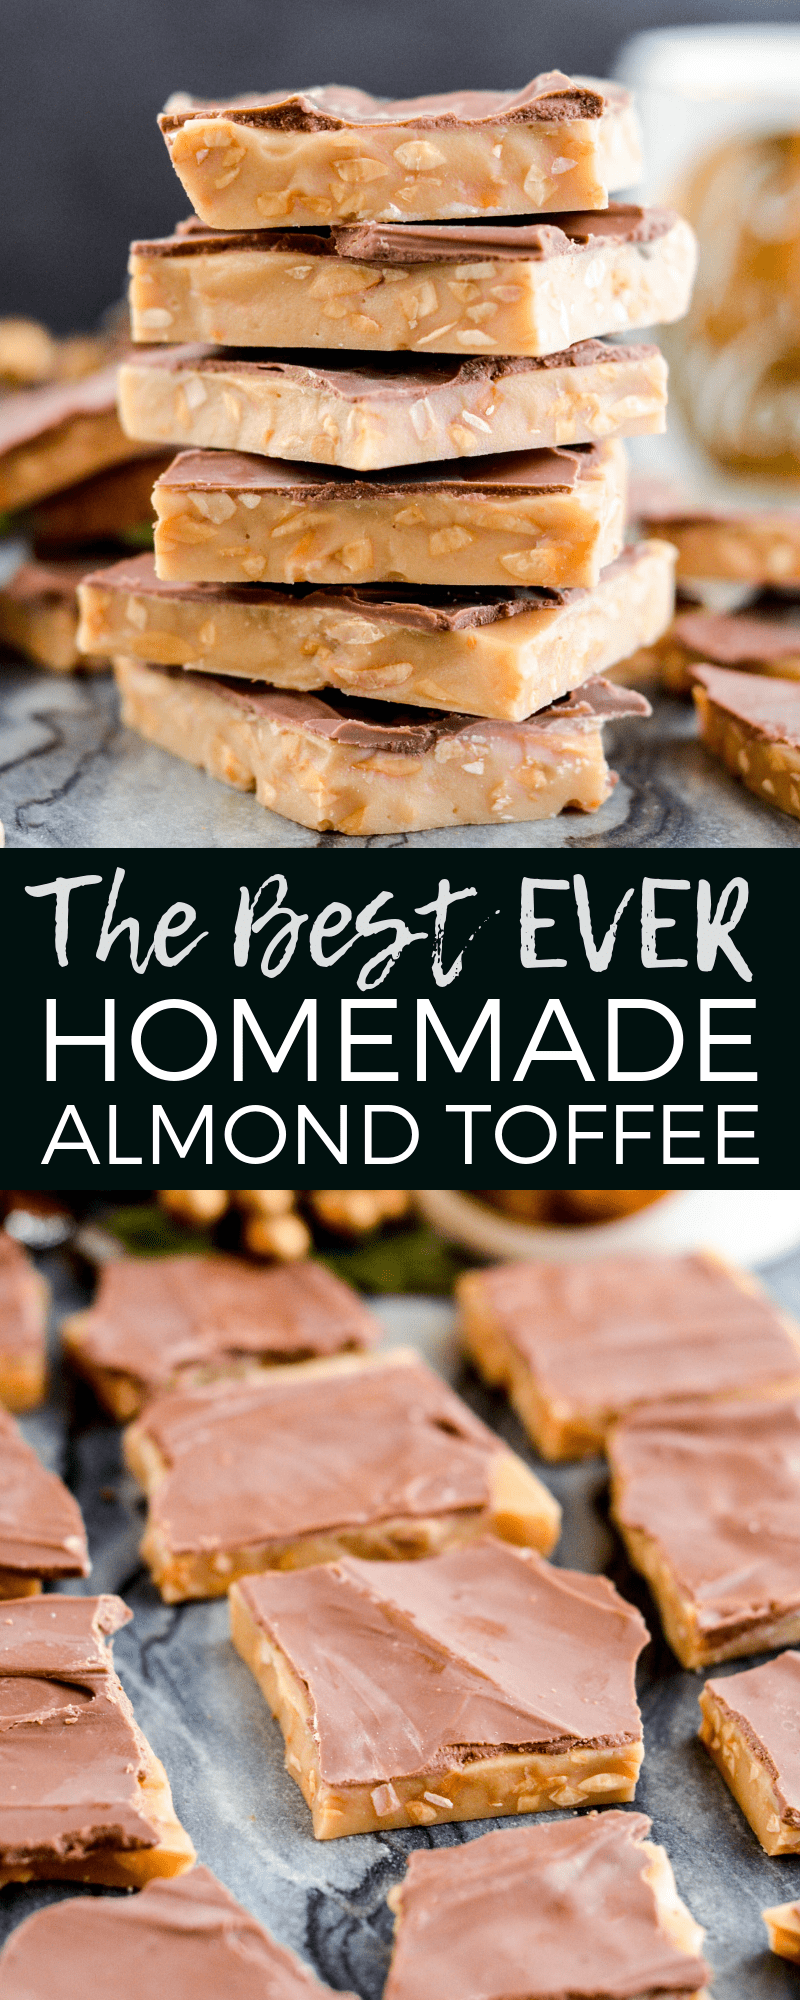 The Best Homemade Almond Toffee Recipe ever! Only 8 ingredients make this delicious holiday candy that is naturally gluten-free! Perfect to give as gifts to your neighbors and friends! #homemadetoffee #Christmas #candy #almondtoffee #toffee #christmascandy #glutenfree #grainfree